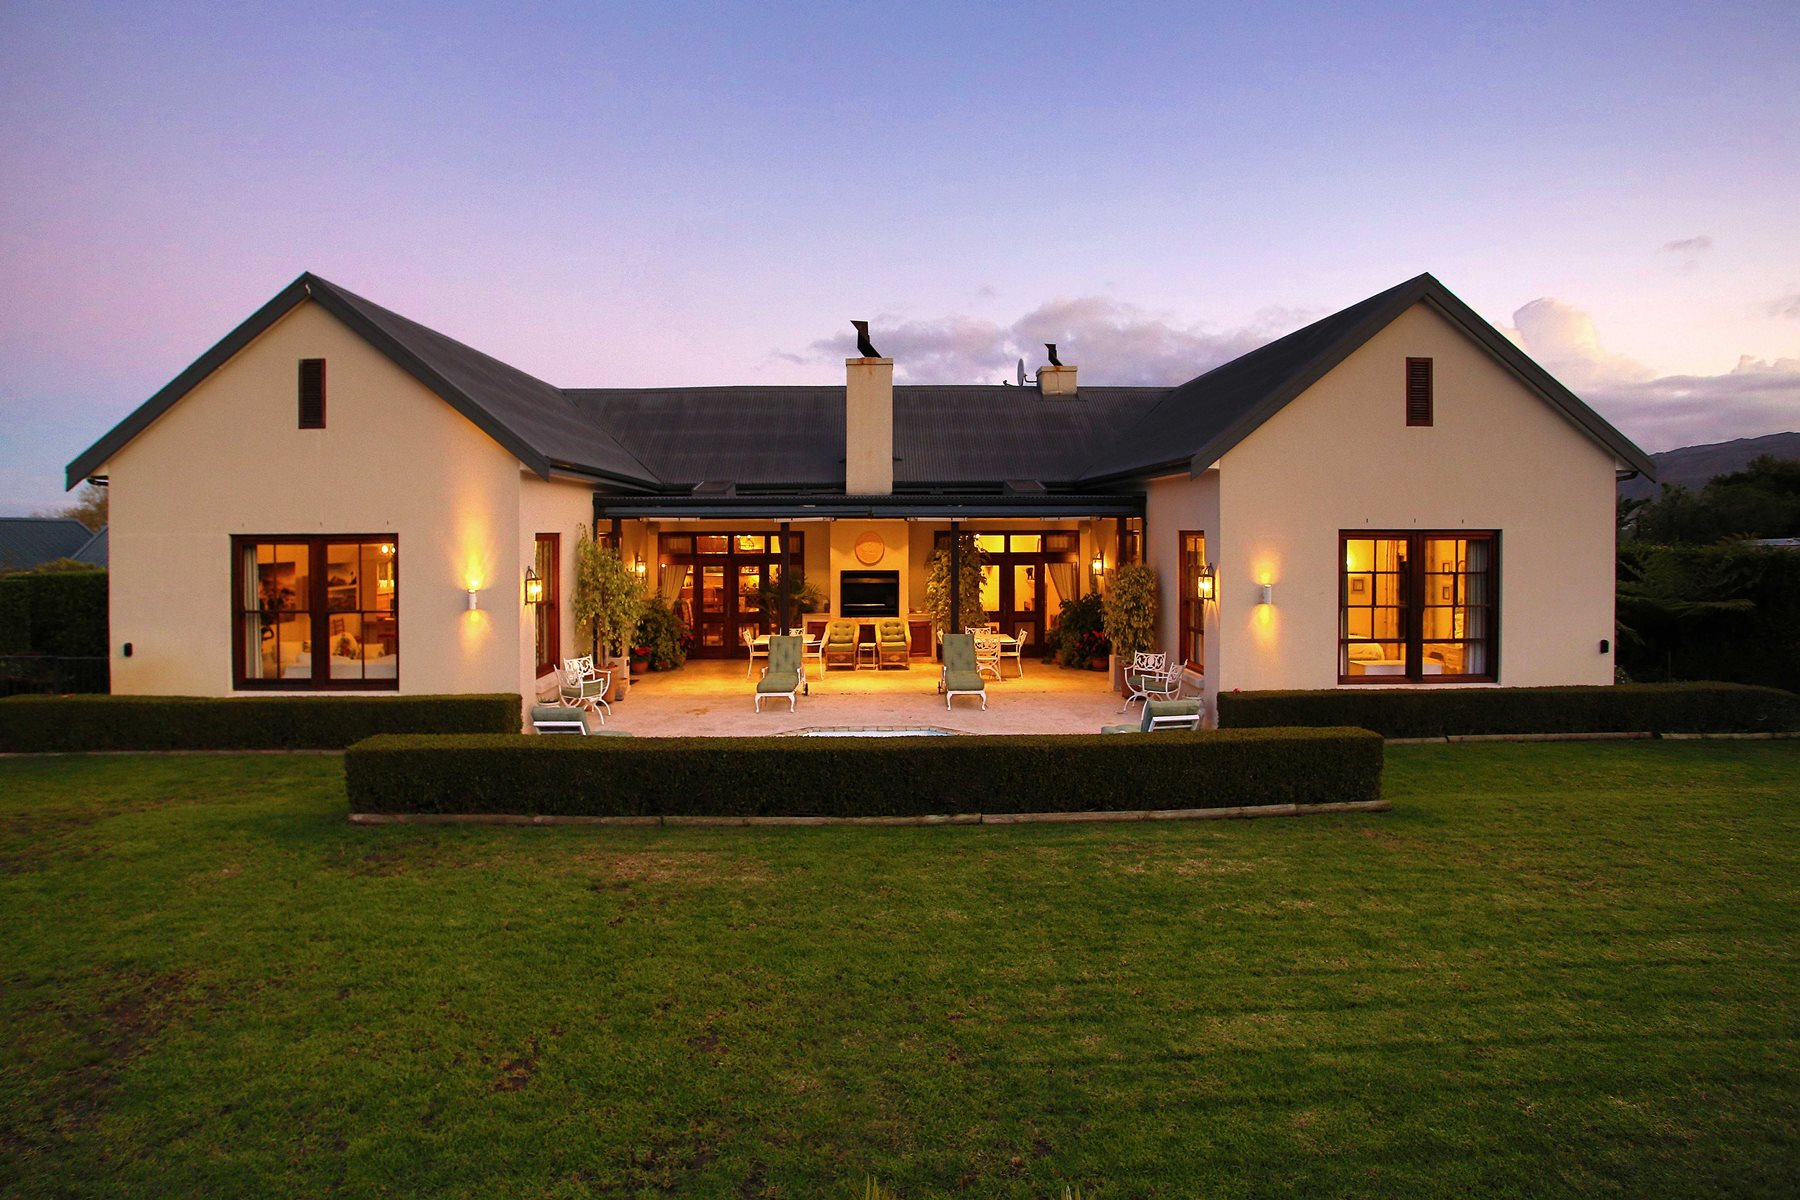 Single Family Home for Sale at Strawberry Fields Estate Cape Town, Western Cape, South Africa